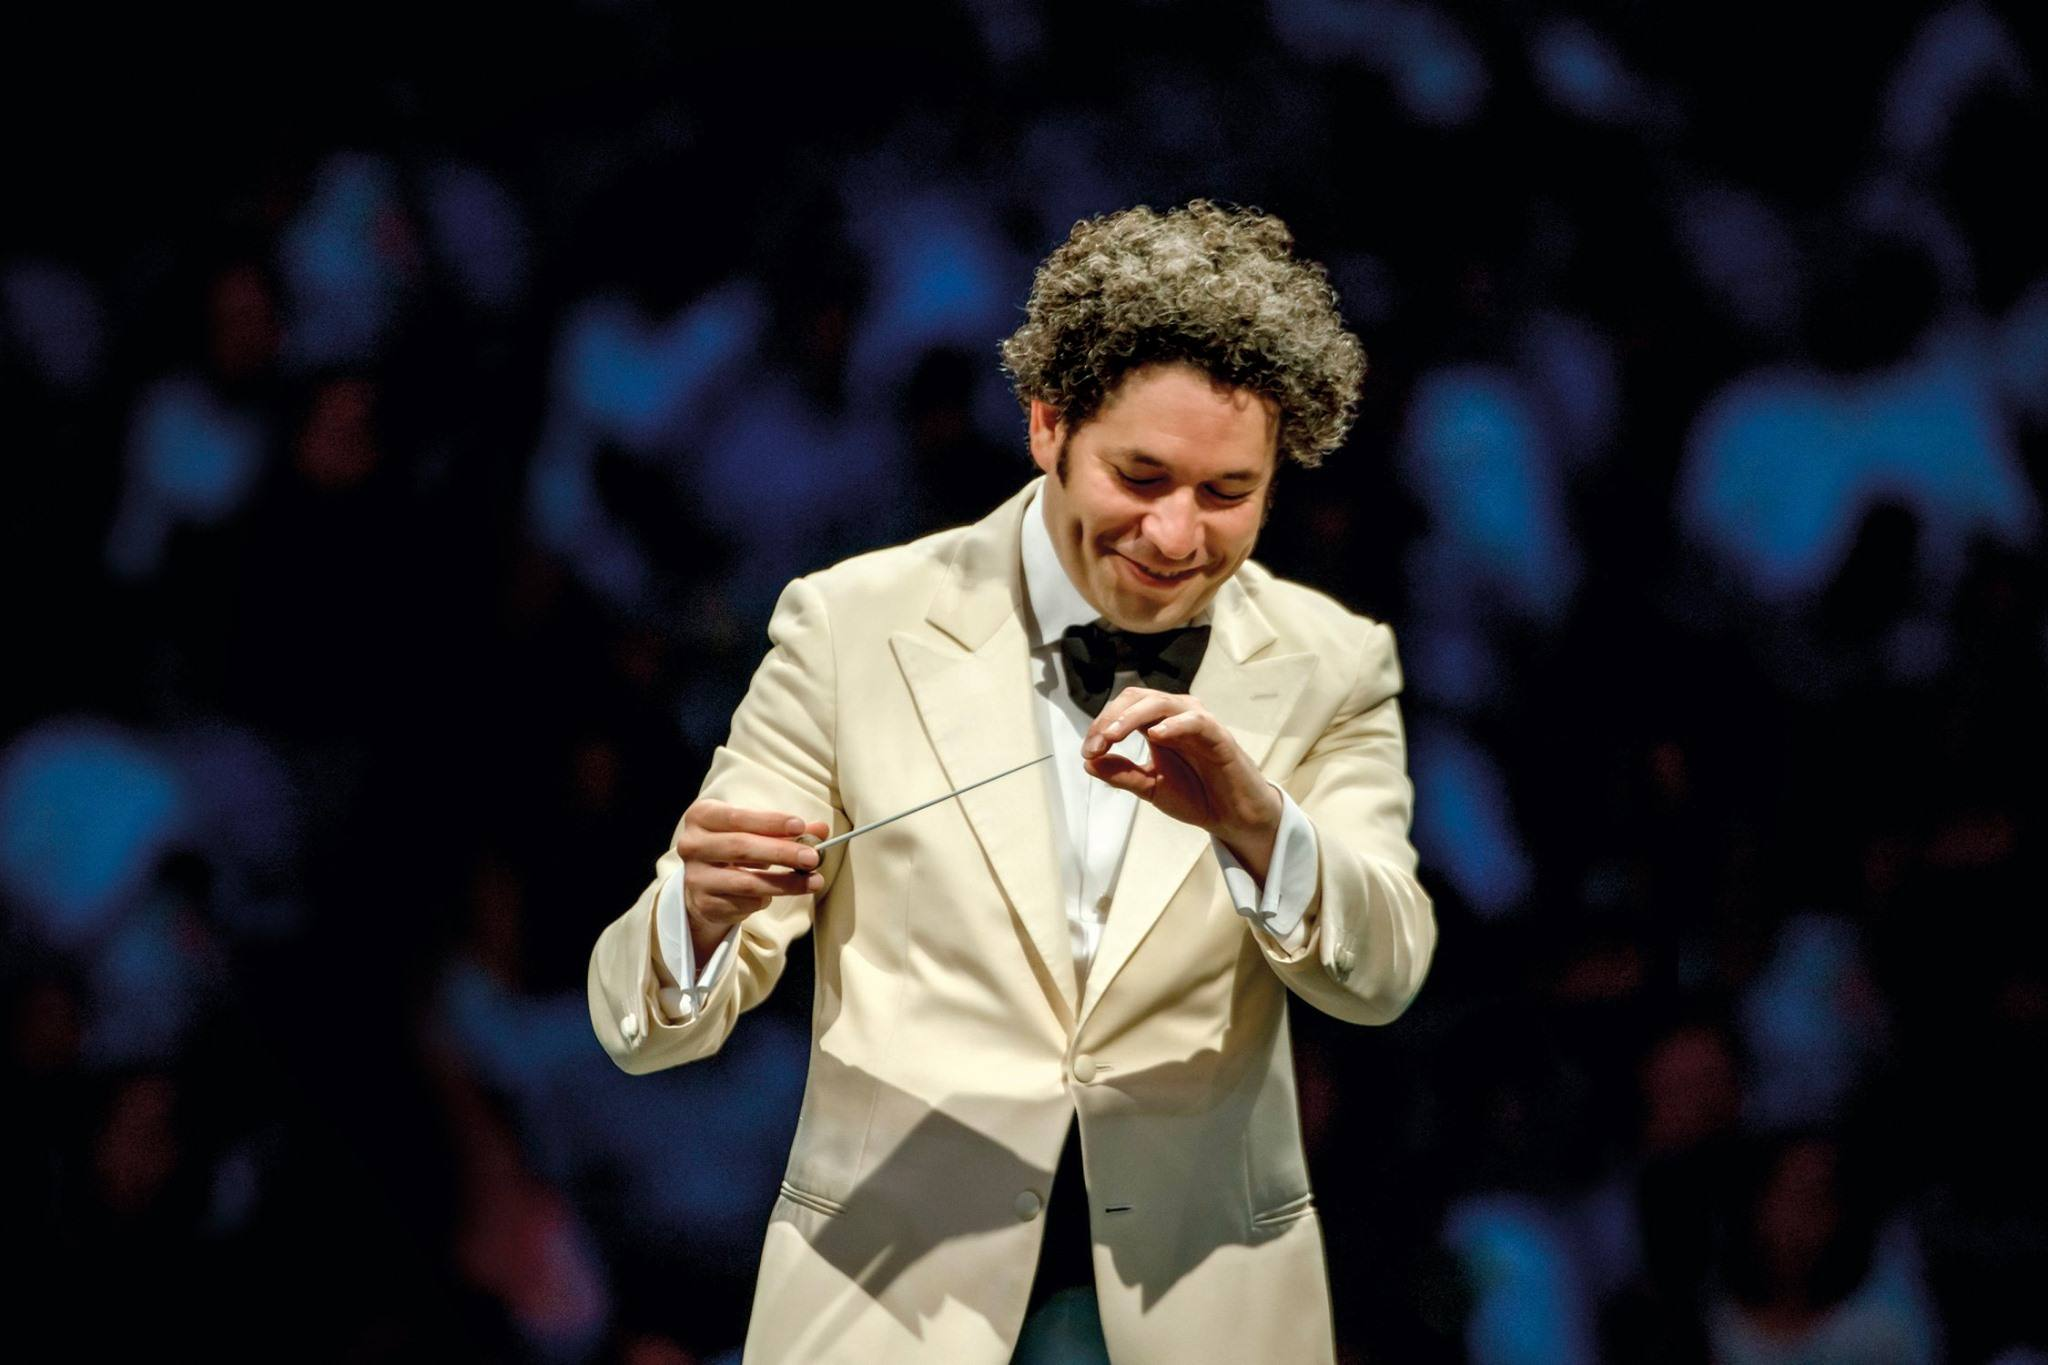 Gustavo Dudamel conducts the LA Phil at the Hollywood Bowl